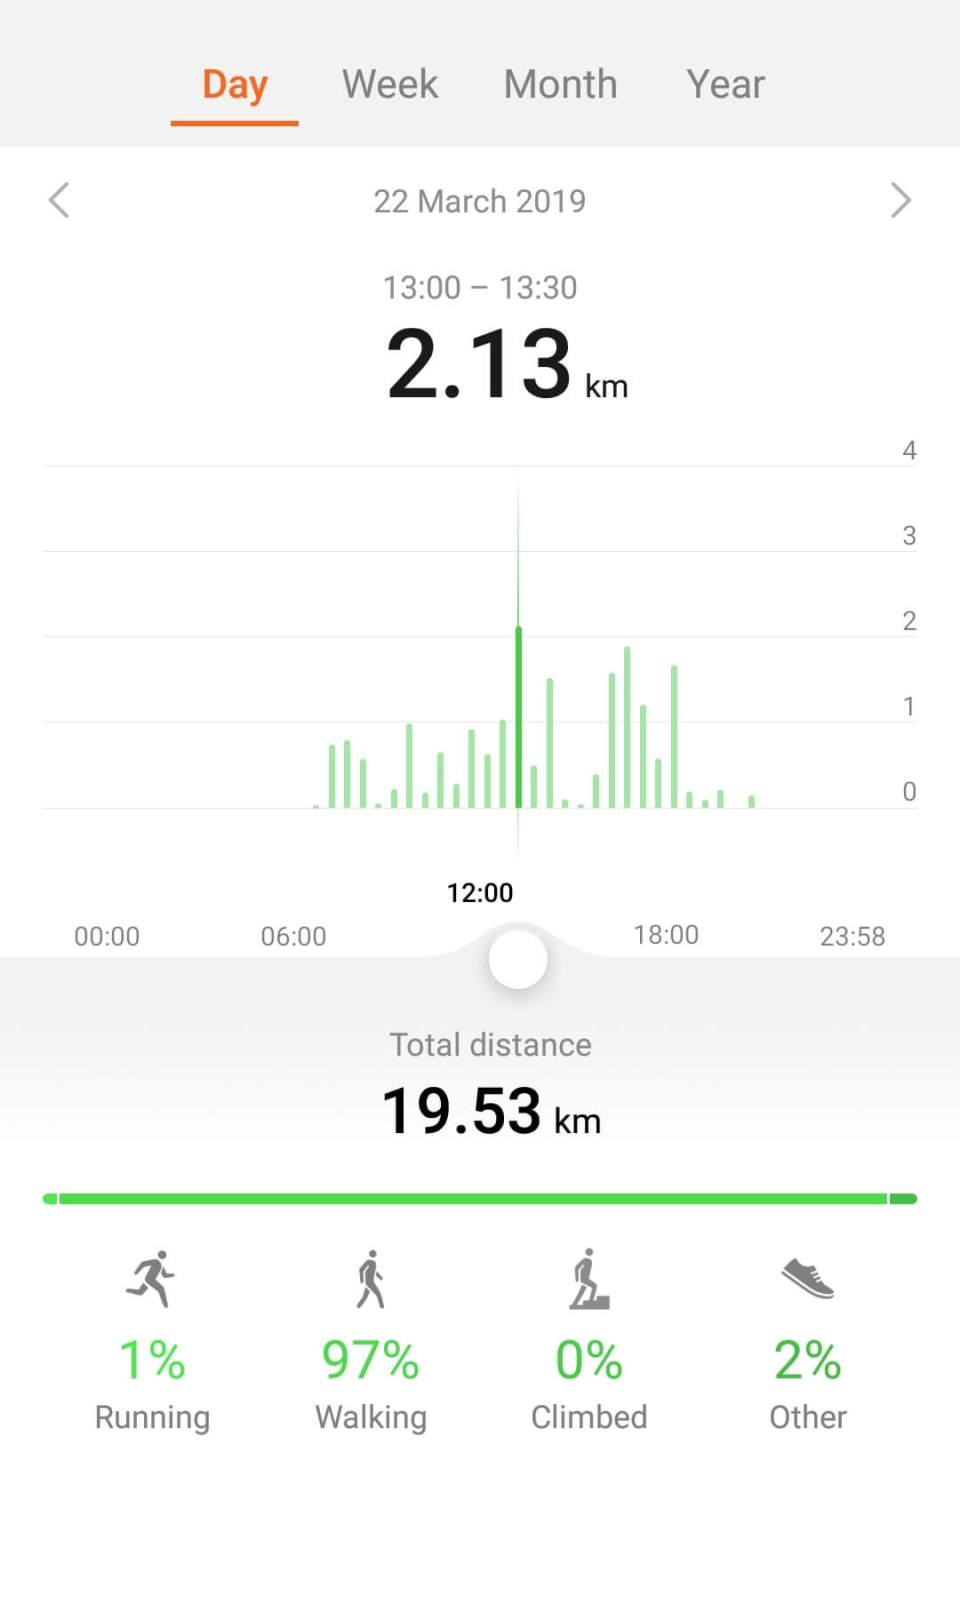 Distance covered on foot on Solo Manali Trip